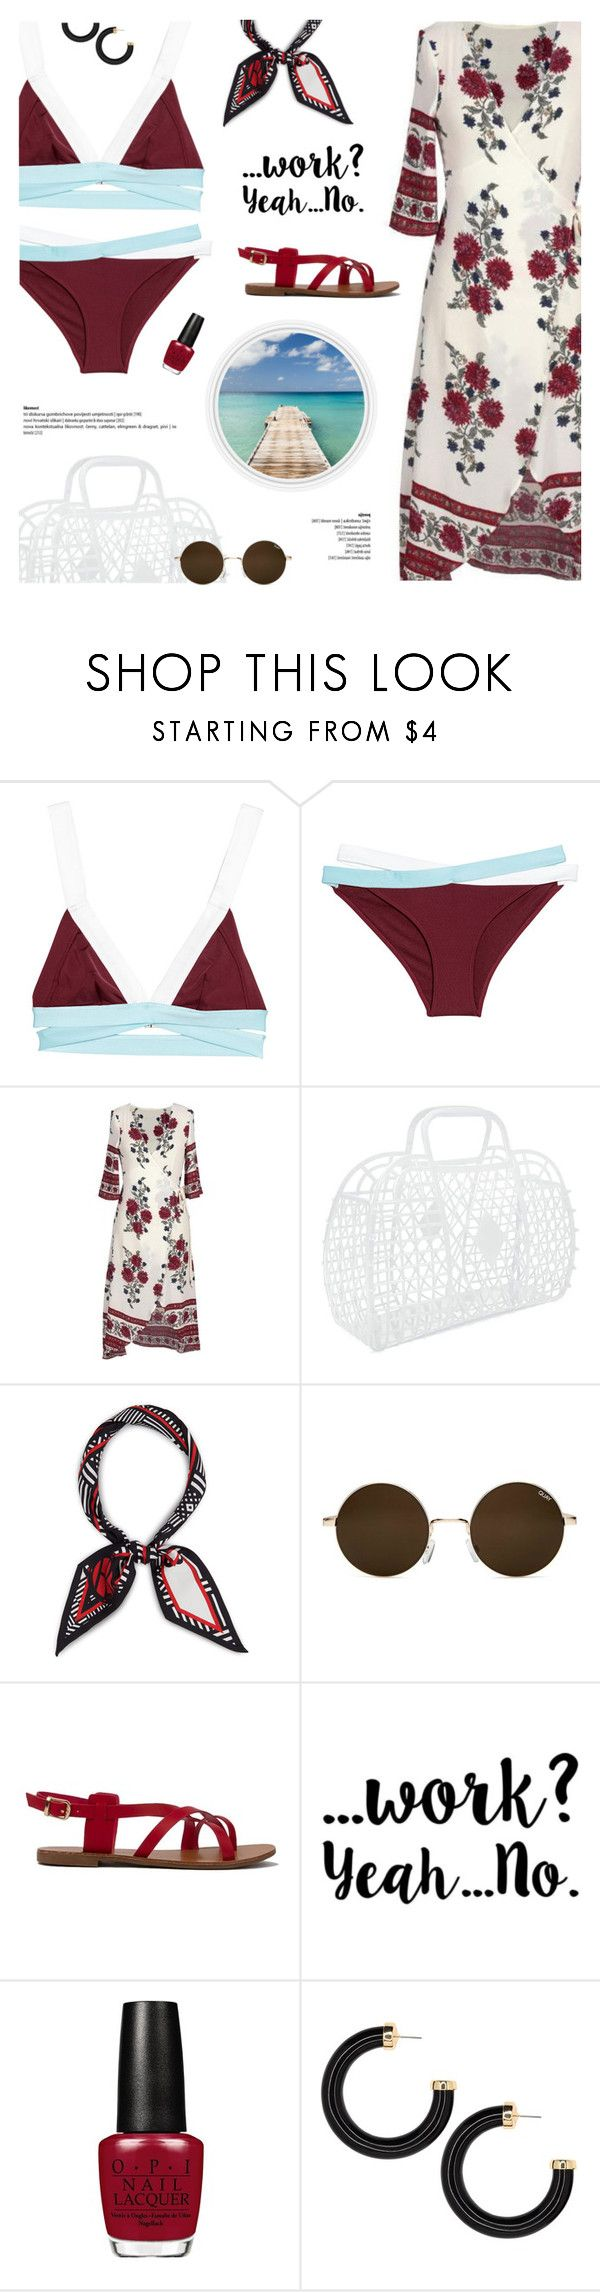 """#1205 Faking It (feat. Kehlani & Lil Yatchy), Calvin Harris"" by blendasantos ❤ liked on Polyvore featuring Forever 21, Henri Bendel, beach and beachstyle"